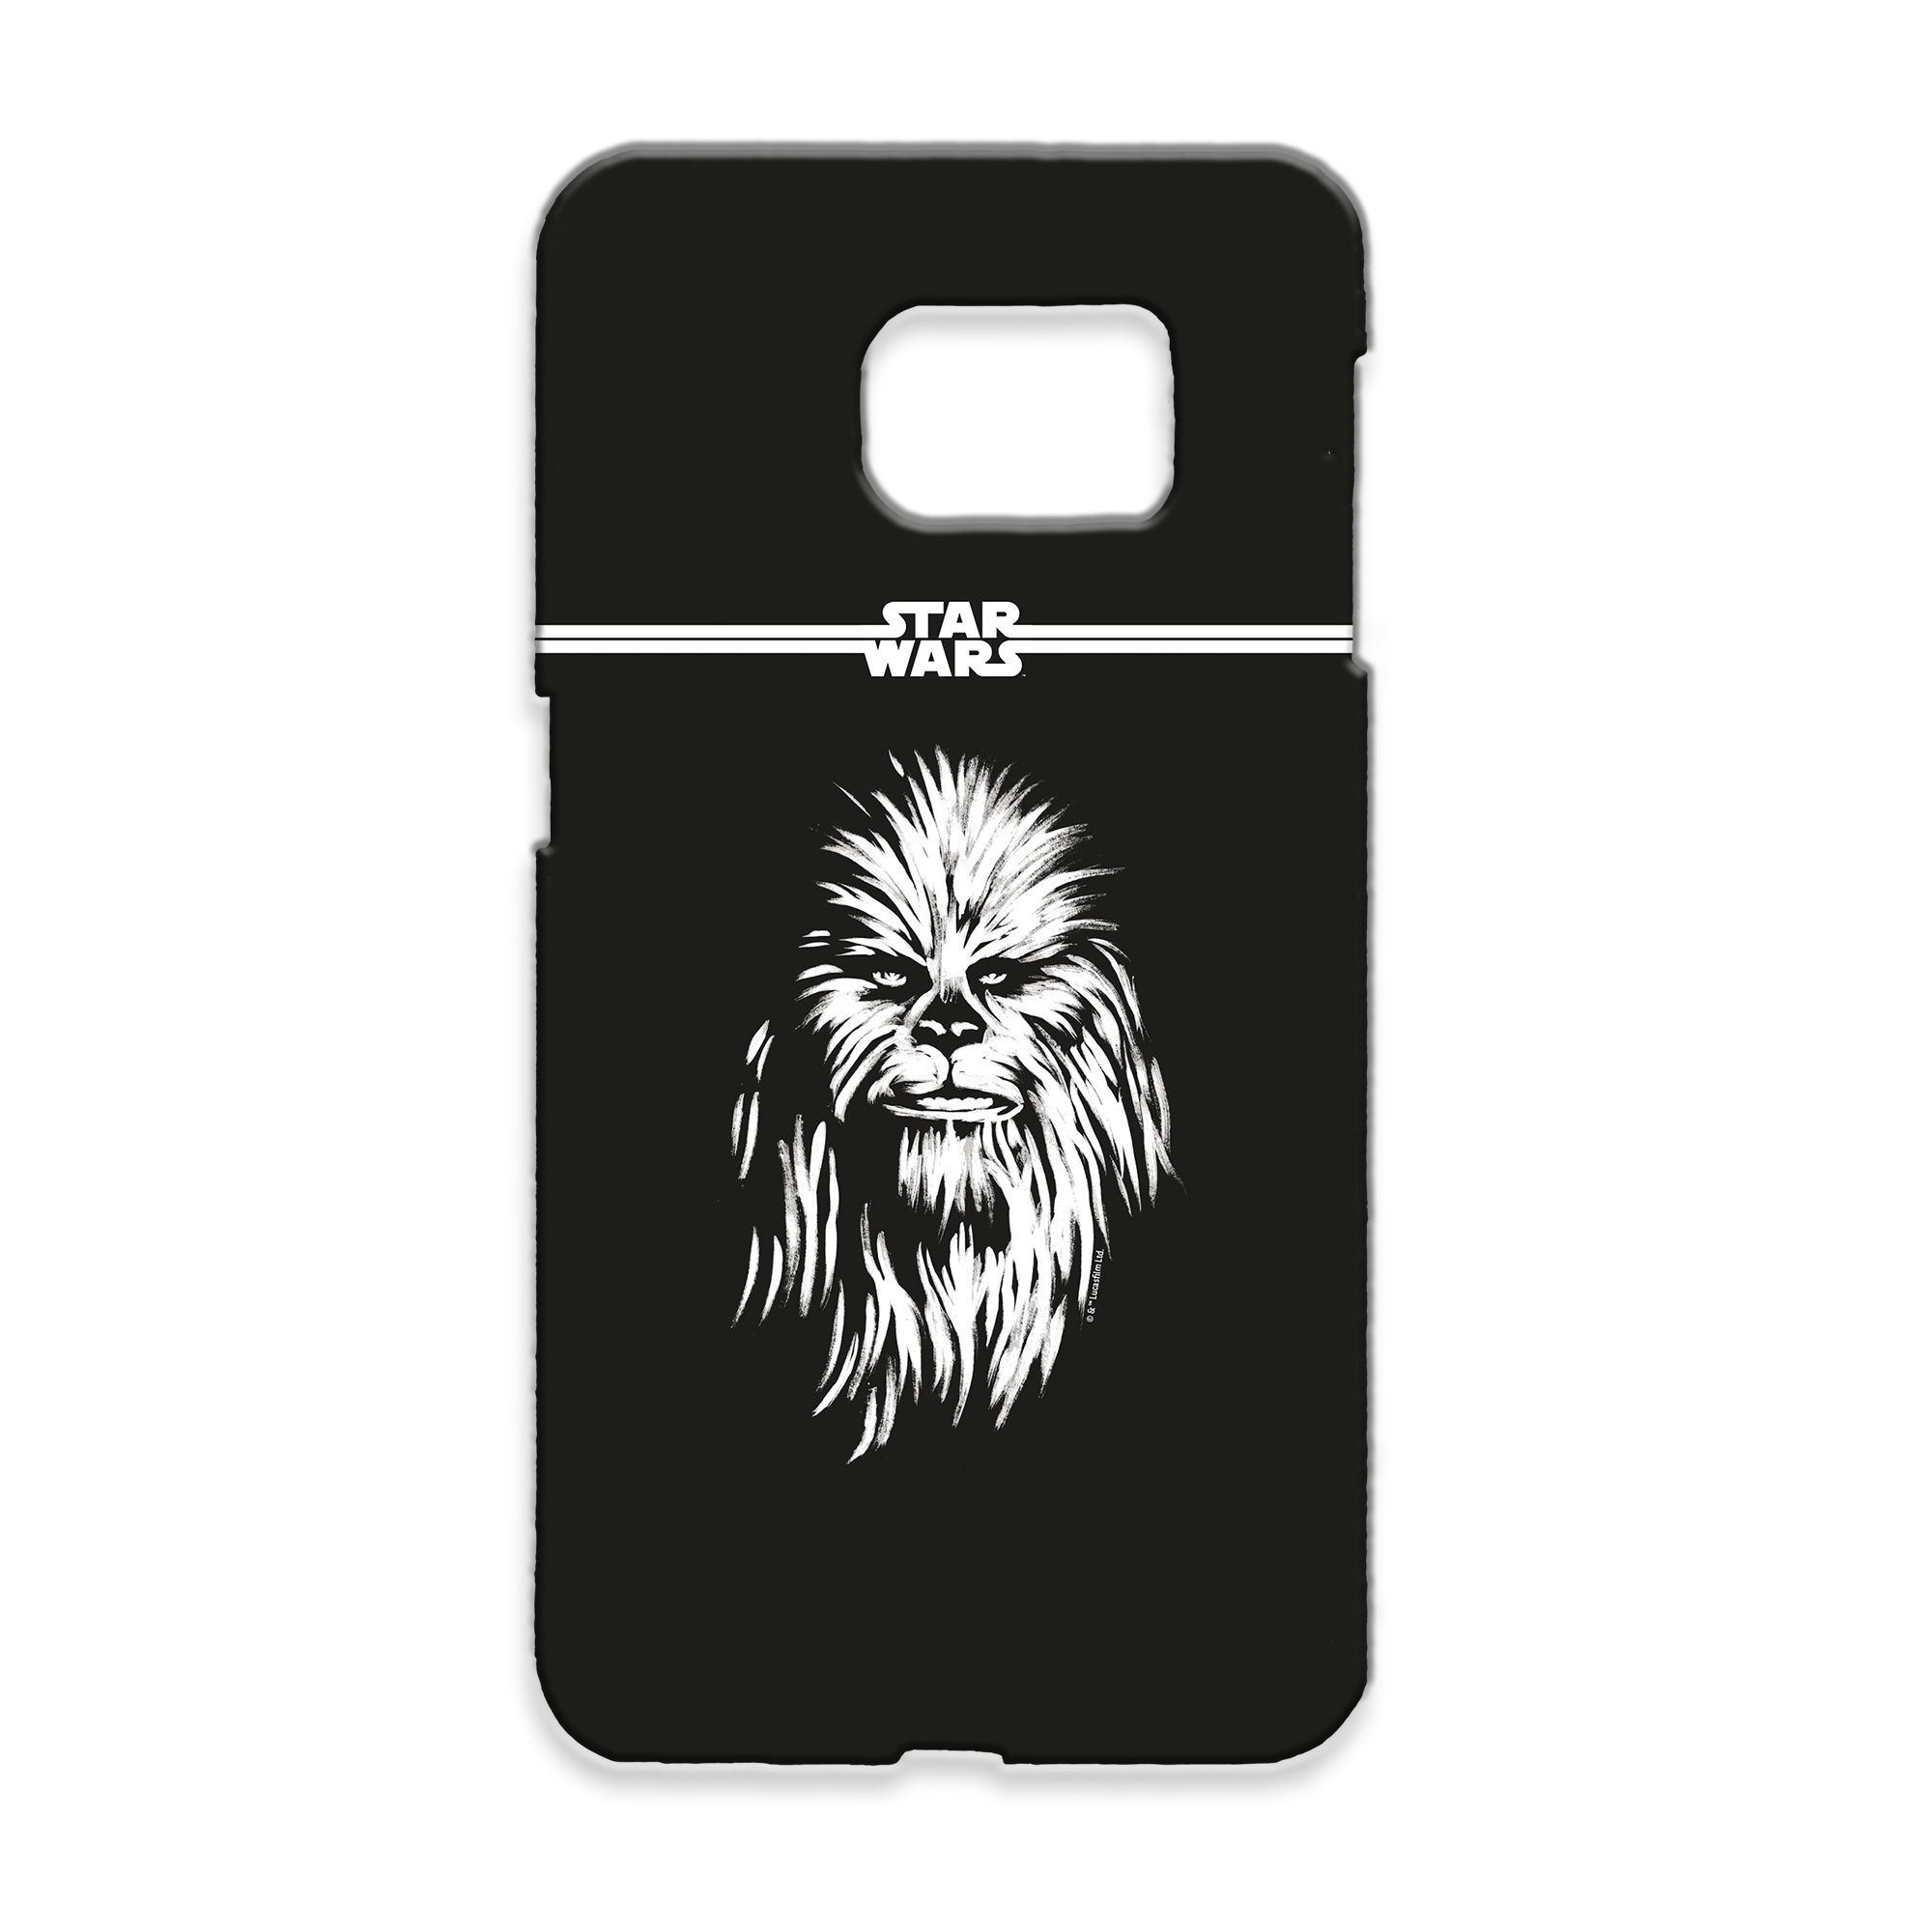 Star Wars Chewbacca Paint Samsung Phone Case